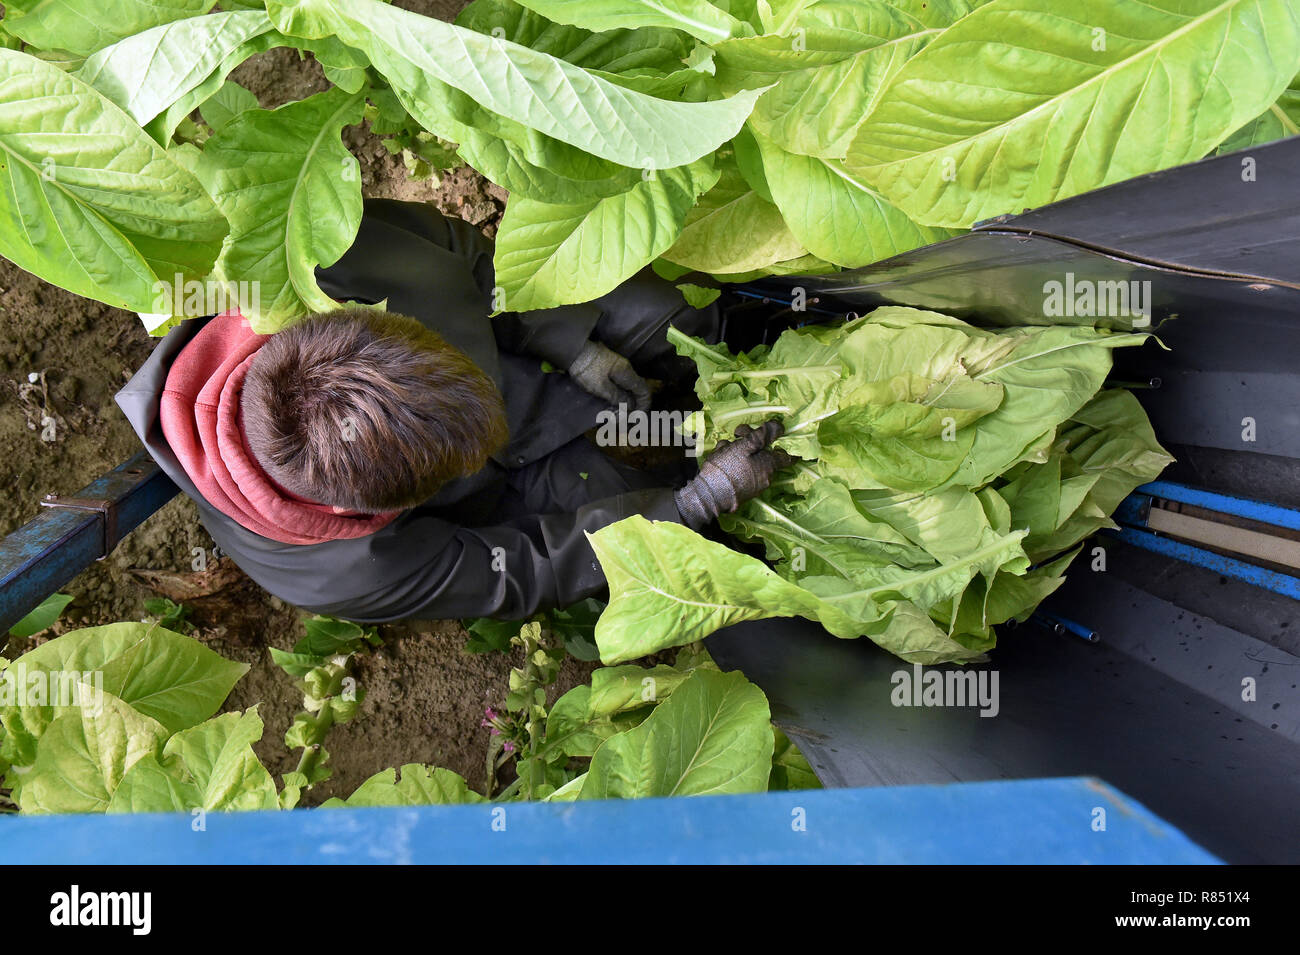 Quesnoy-sur-Deule (northern France): cultivation of tobacco. Tobacco leaves being harvested at the Desreumaux's place *** Local Caption *** - Stock Image